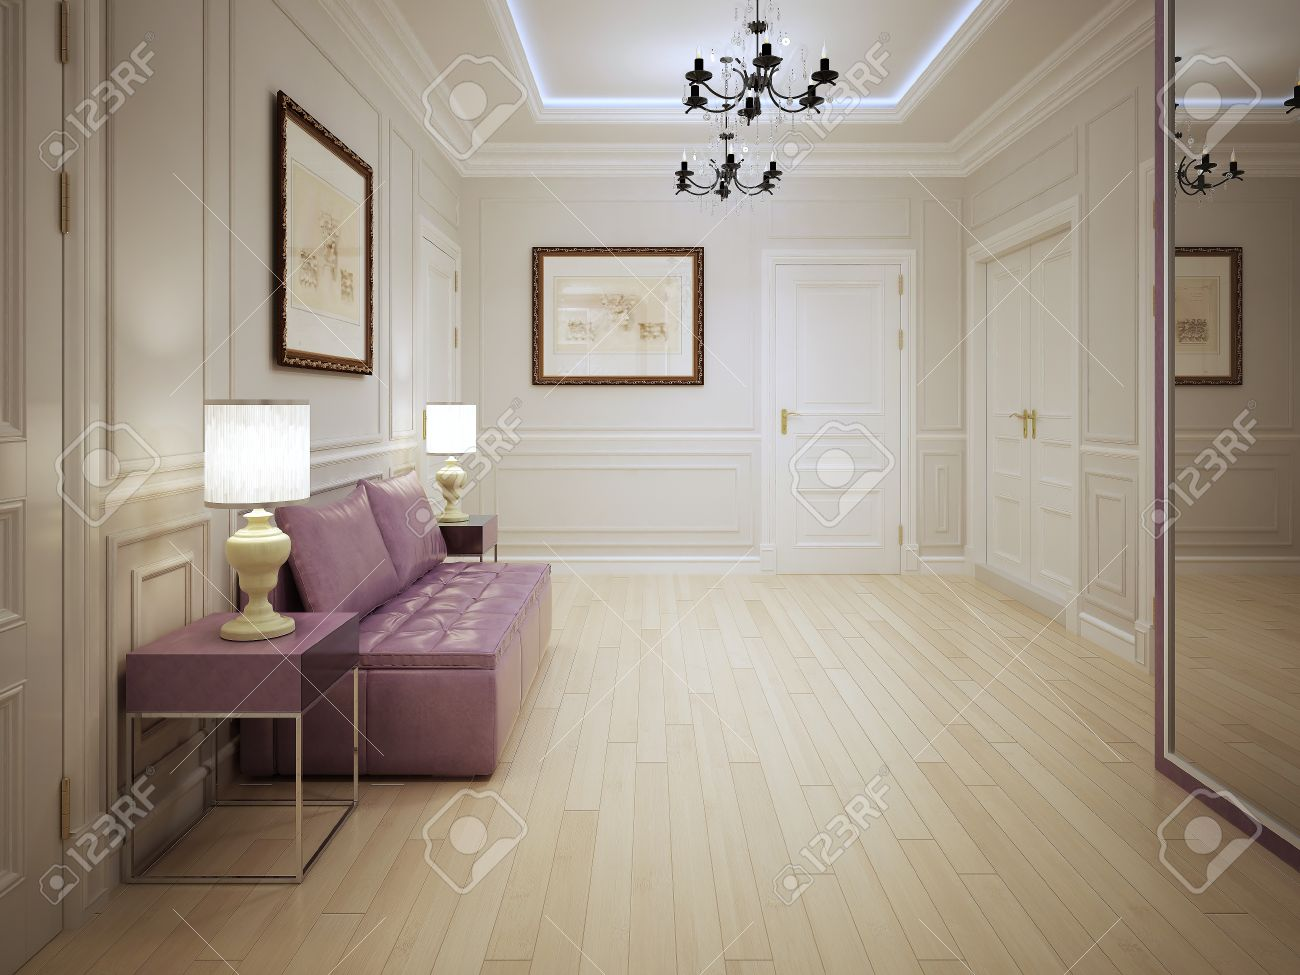 furniture for entrance hall. Modern Style Of Entrance Hall. Hall With Molded Wall Panels Pink Furniture . For